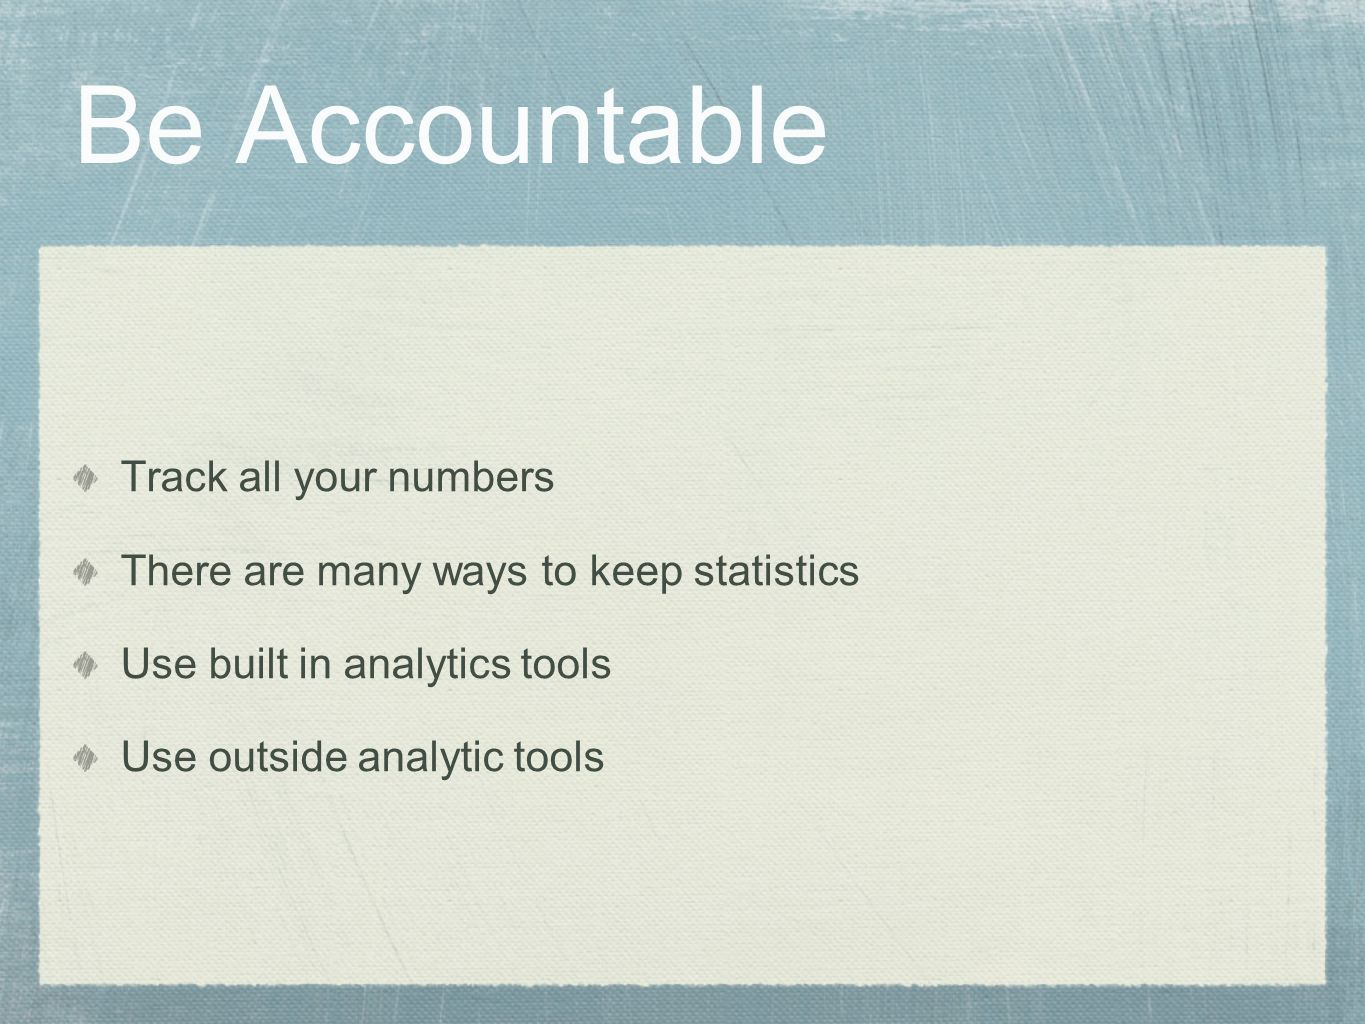 Be Accountable Track all your numbers There are many ways to keep statistics Use built in analytics tools Use outside analytic tools